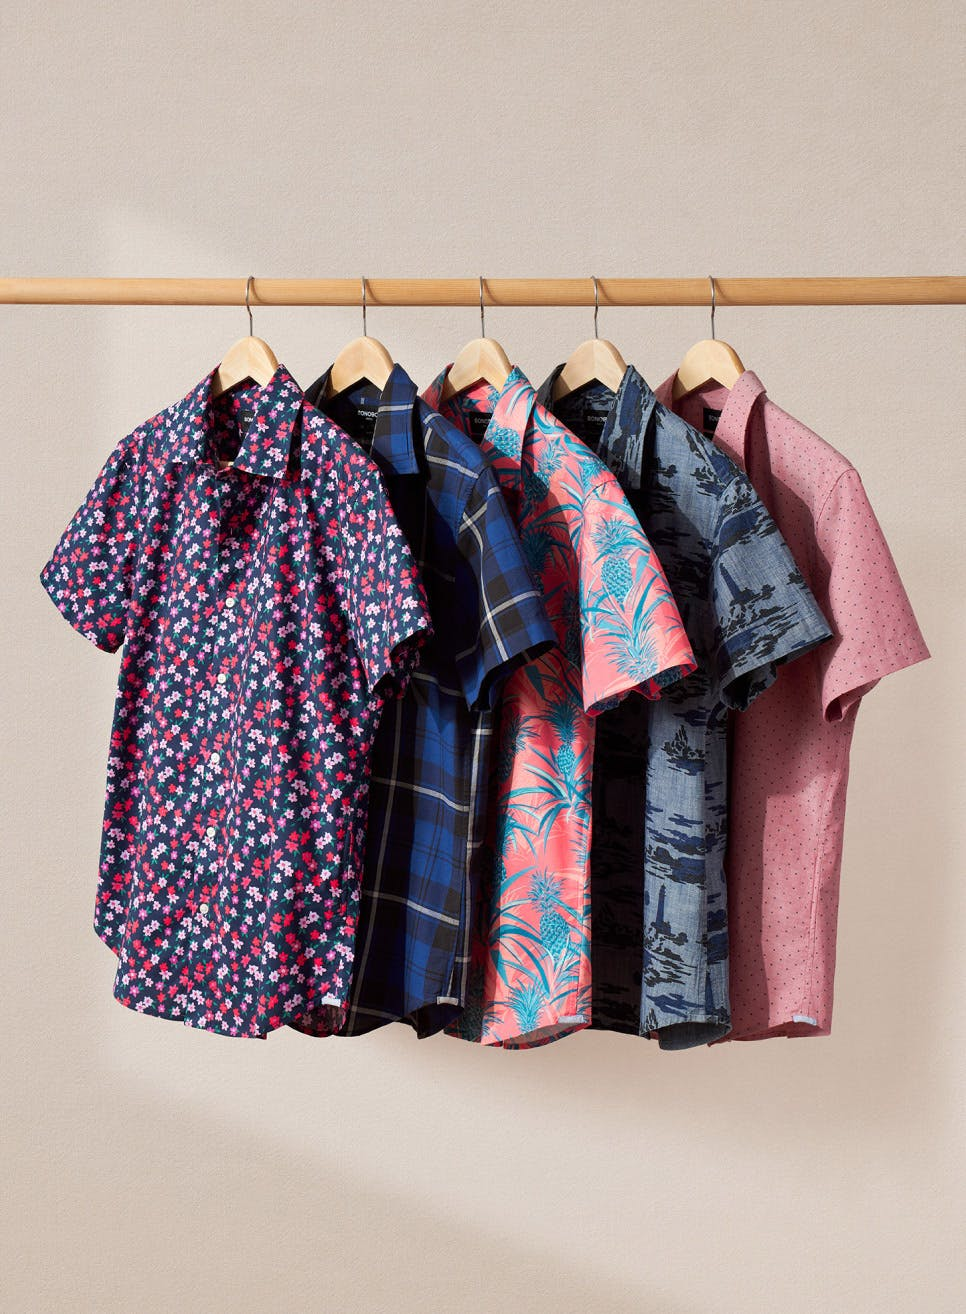 image of festive and colorful riviera shirts